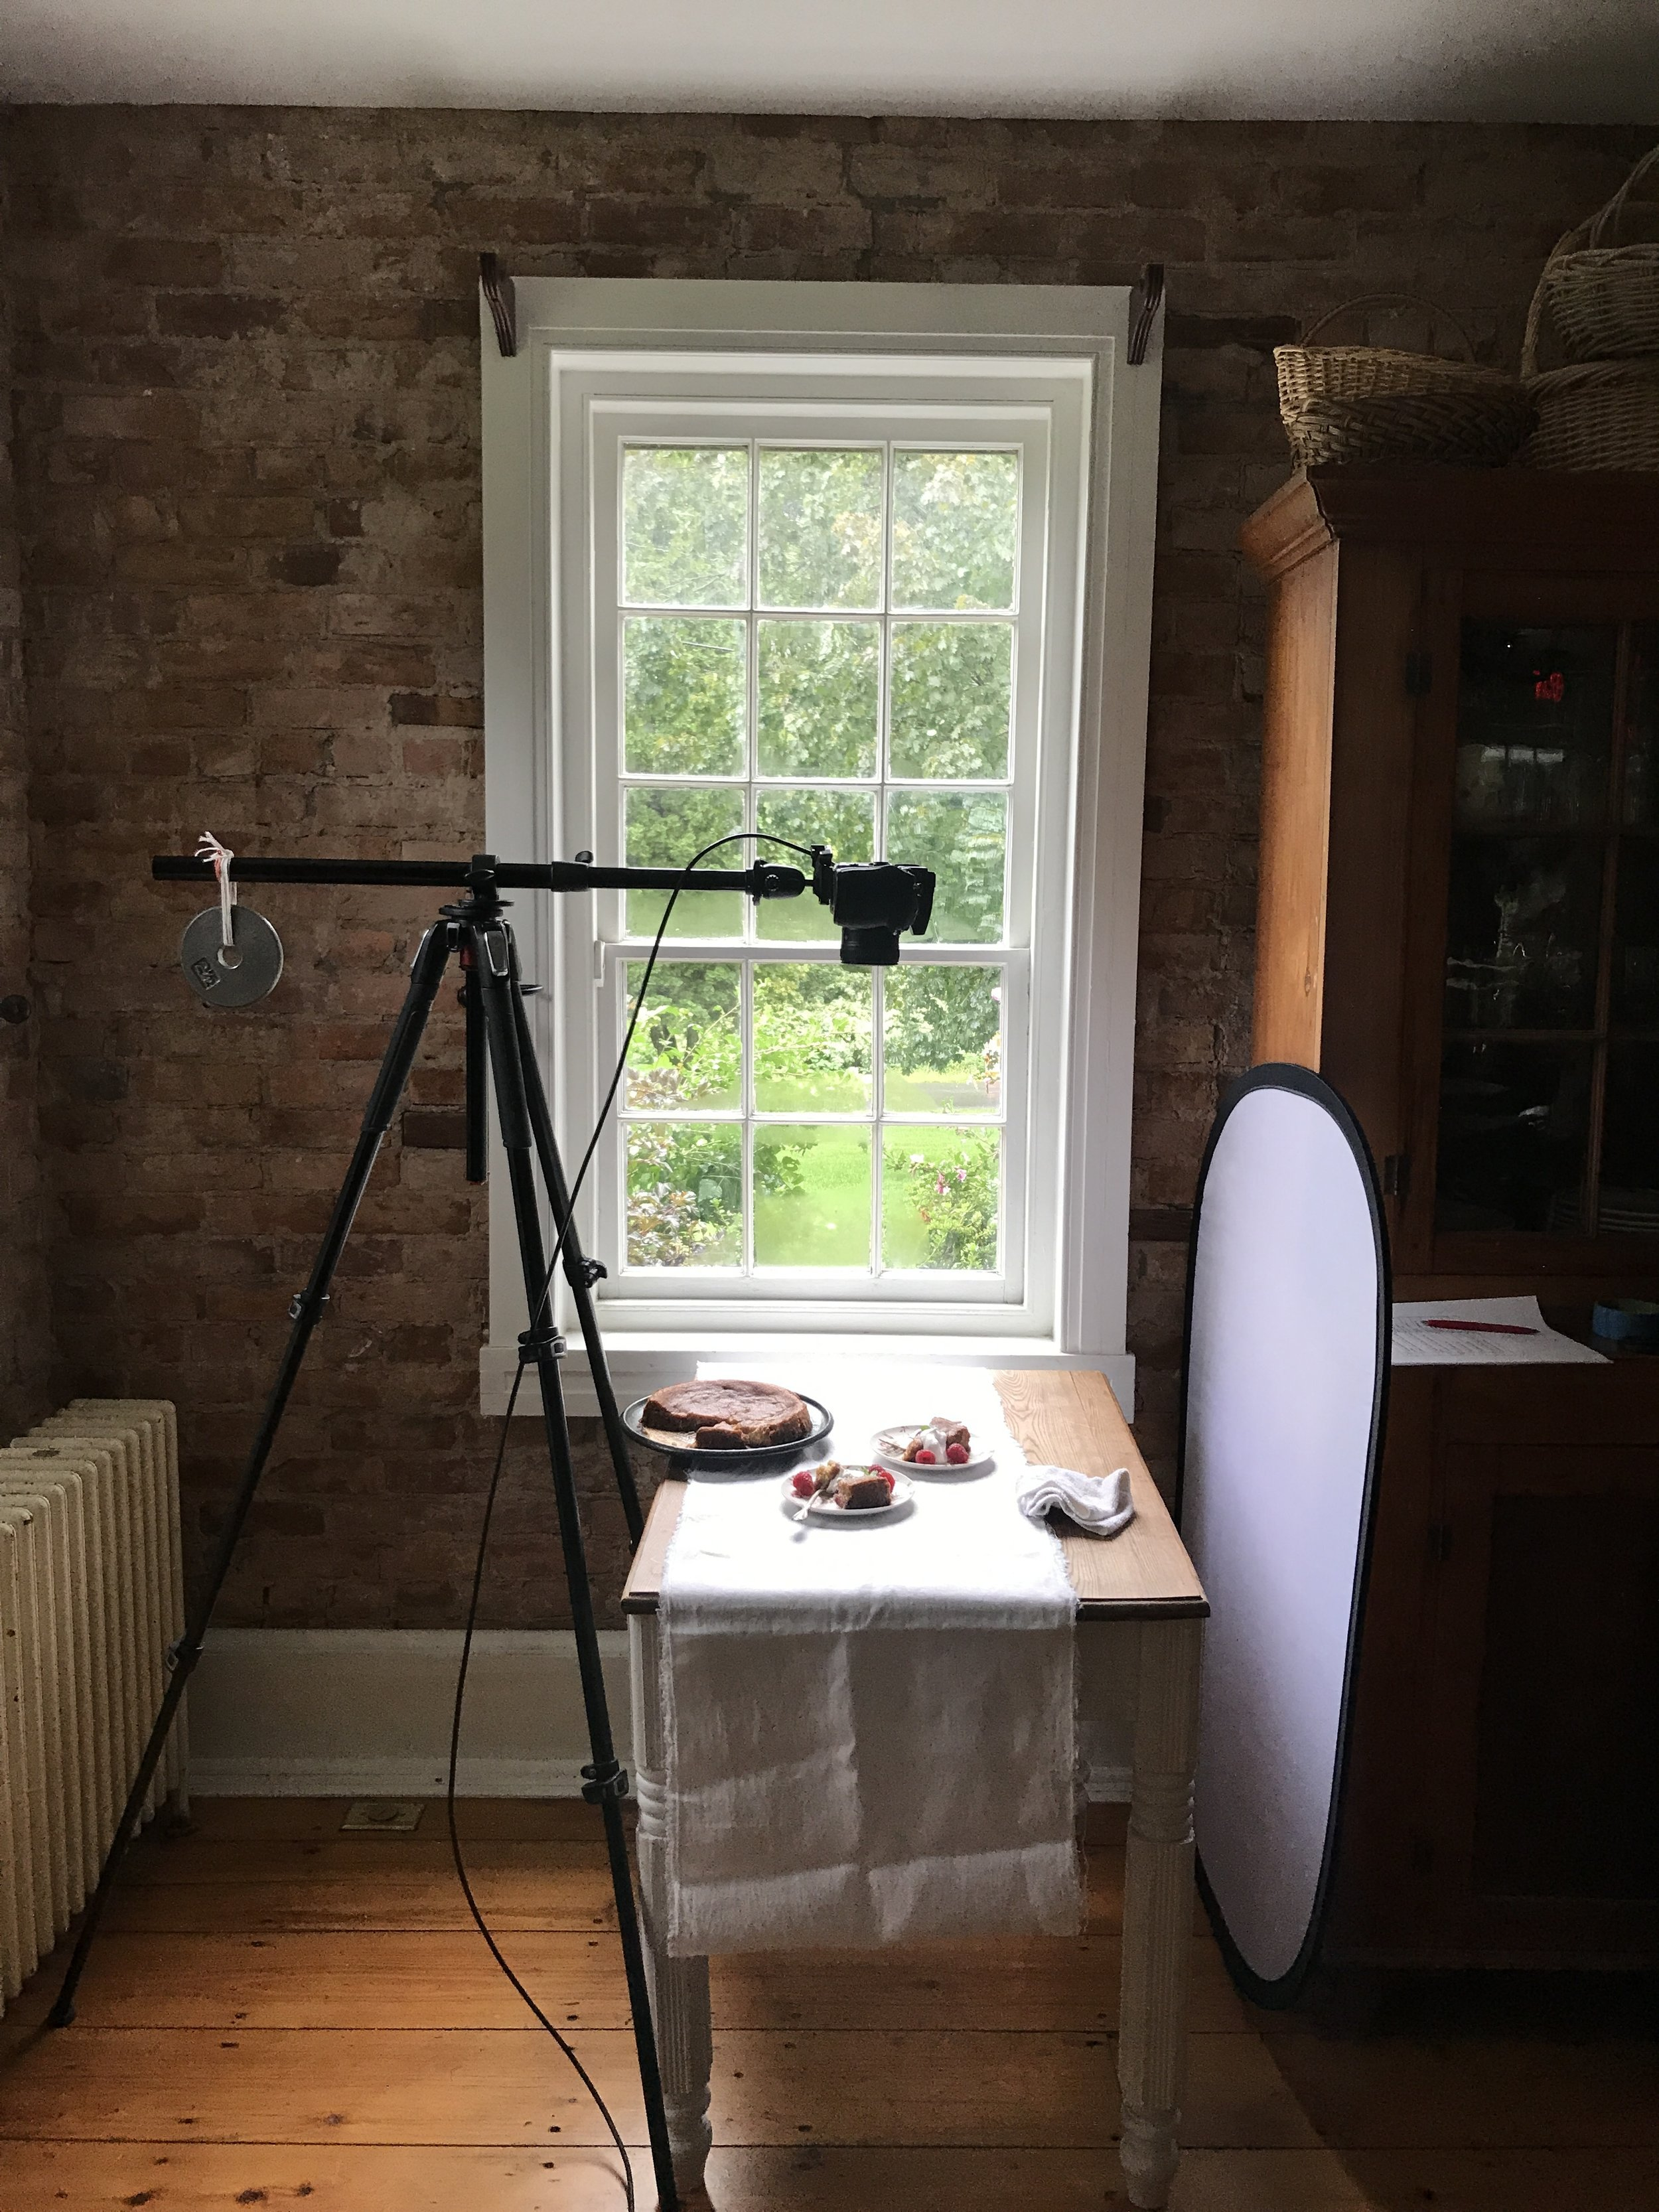 Behind-the-scenes on-site of cookbook photo shoot in the Catskills